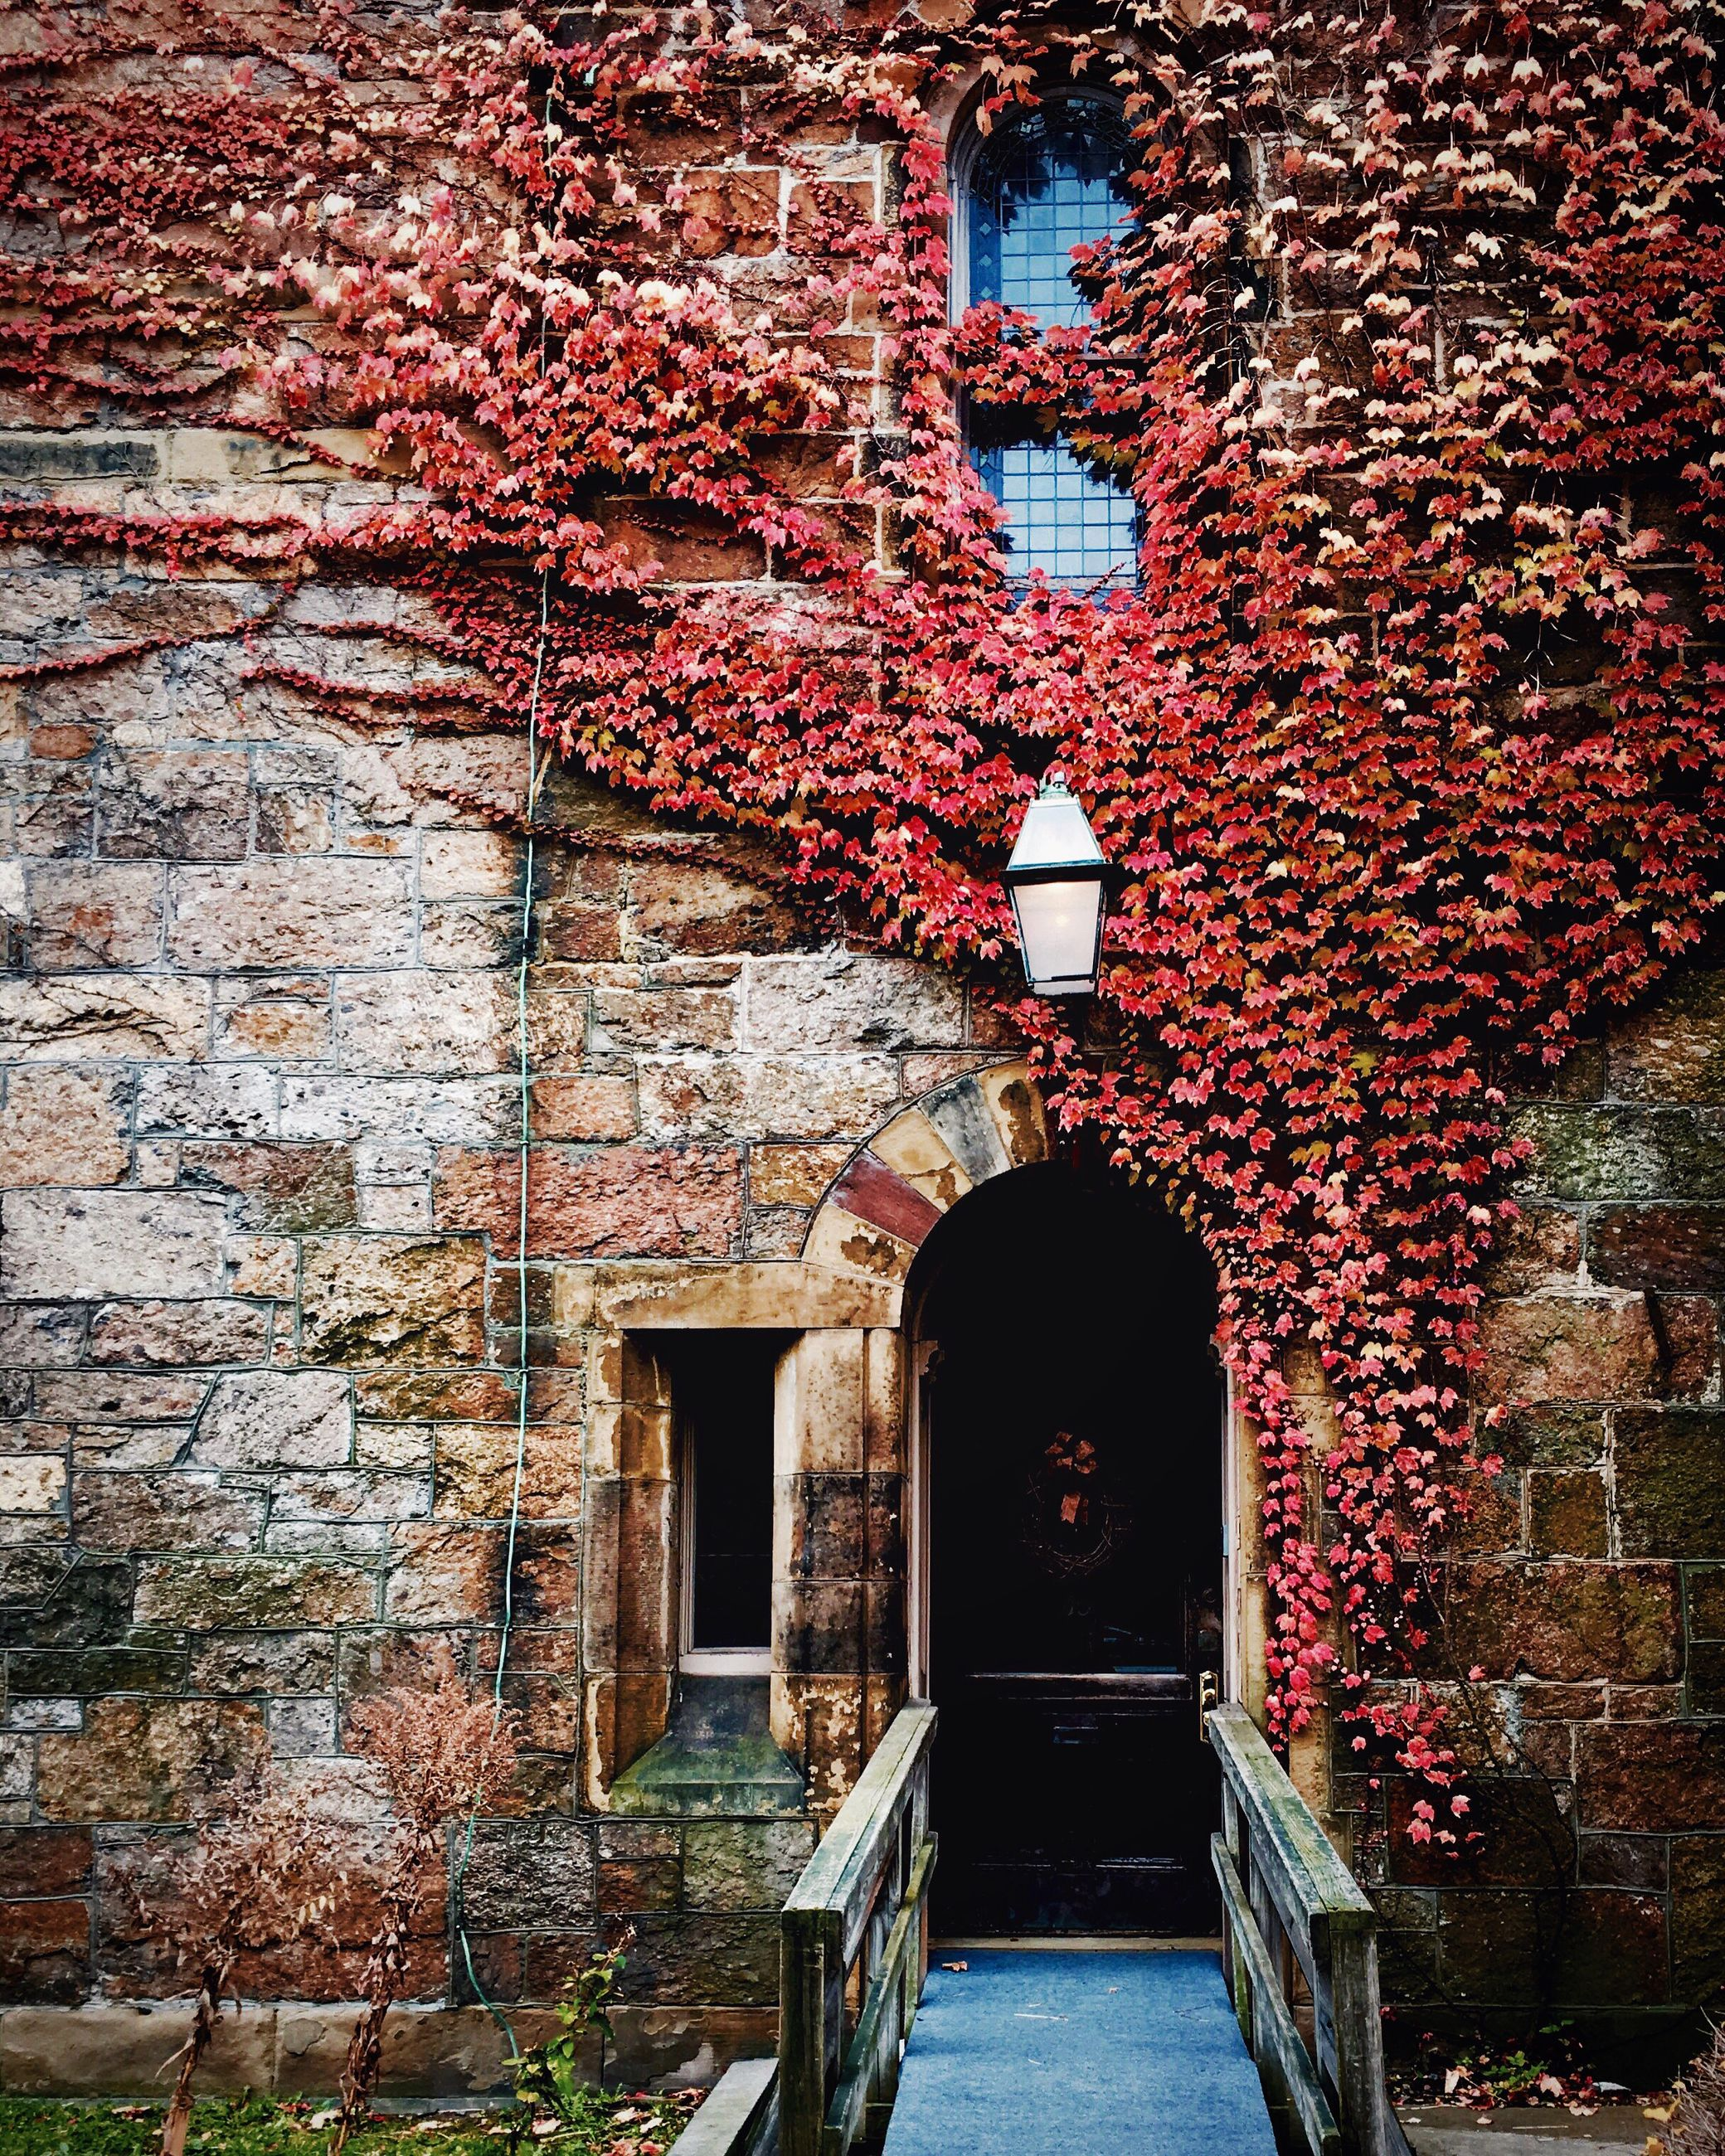 building exterior, architecture, built structure, house, window, residential structure, residential building, brick wall, ivy, old, stone wall, door, tree, outdoors, wall - building feature, building, day, no people, growth, plant